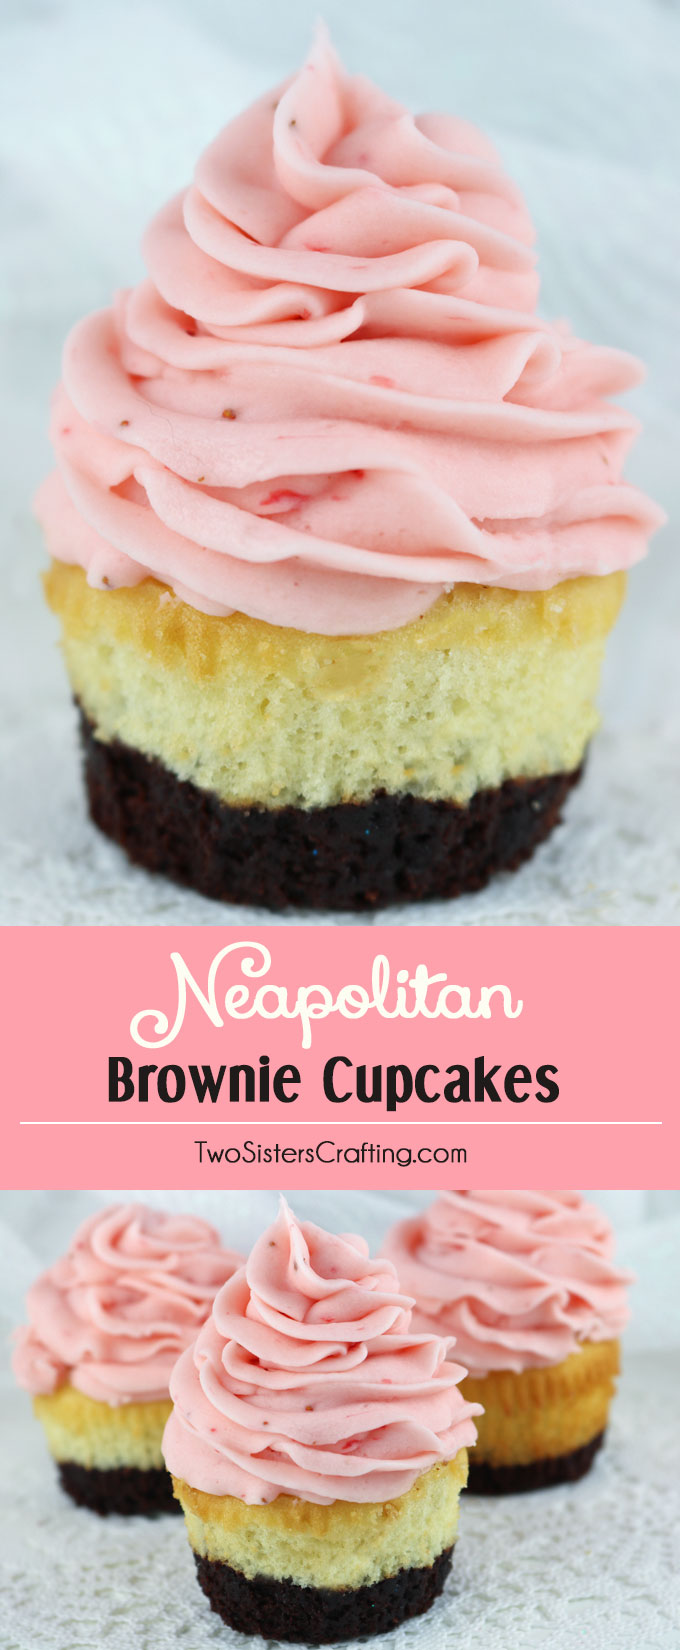 Neapolitan Brownie Cupcakes - brownies plus cake plus strawberry frosting in one unique and delicious cupcake recipe. This special cupcake tastes as amazing as it looks! Your family and your guests will be impressed when you serve this super yummy and unique strawberry dessert. Follow us for more great Cupcake Ideas.